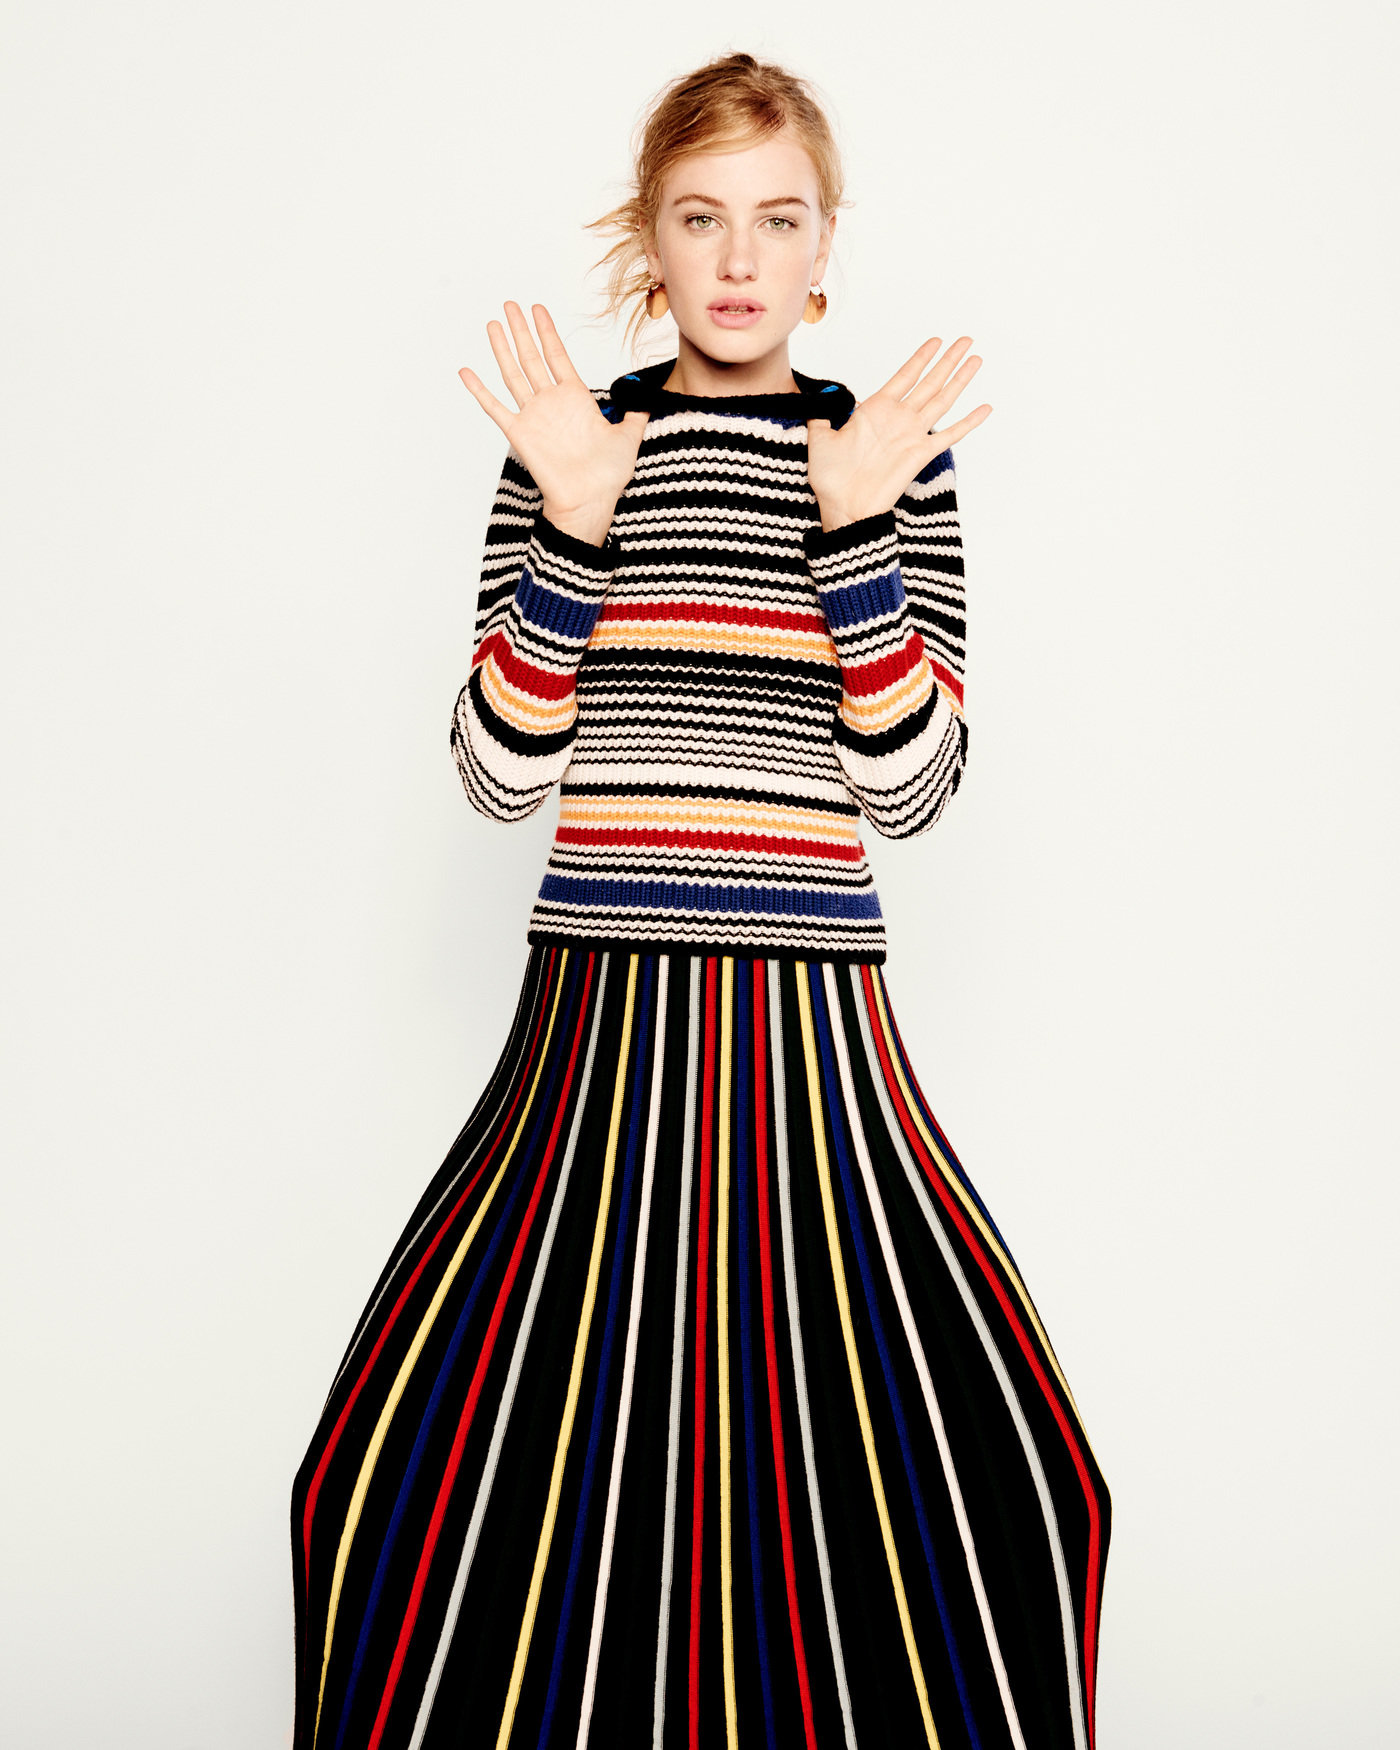 Wsj mag stripes 01 1400 xxx q85